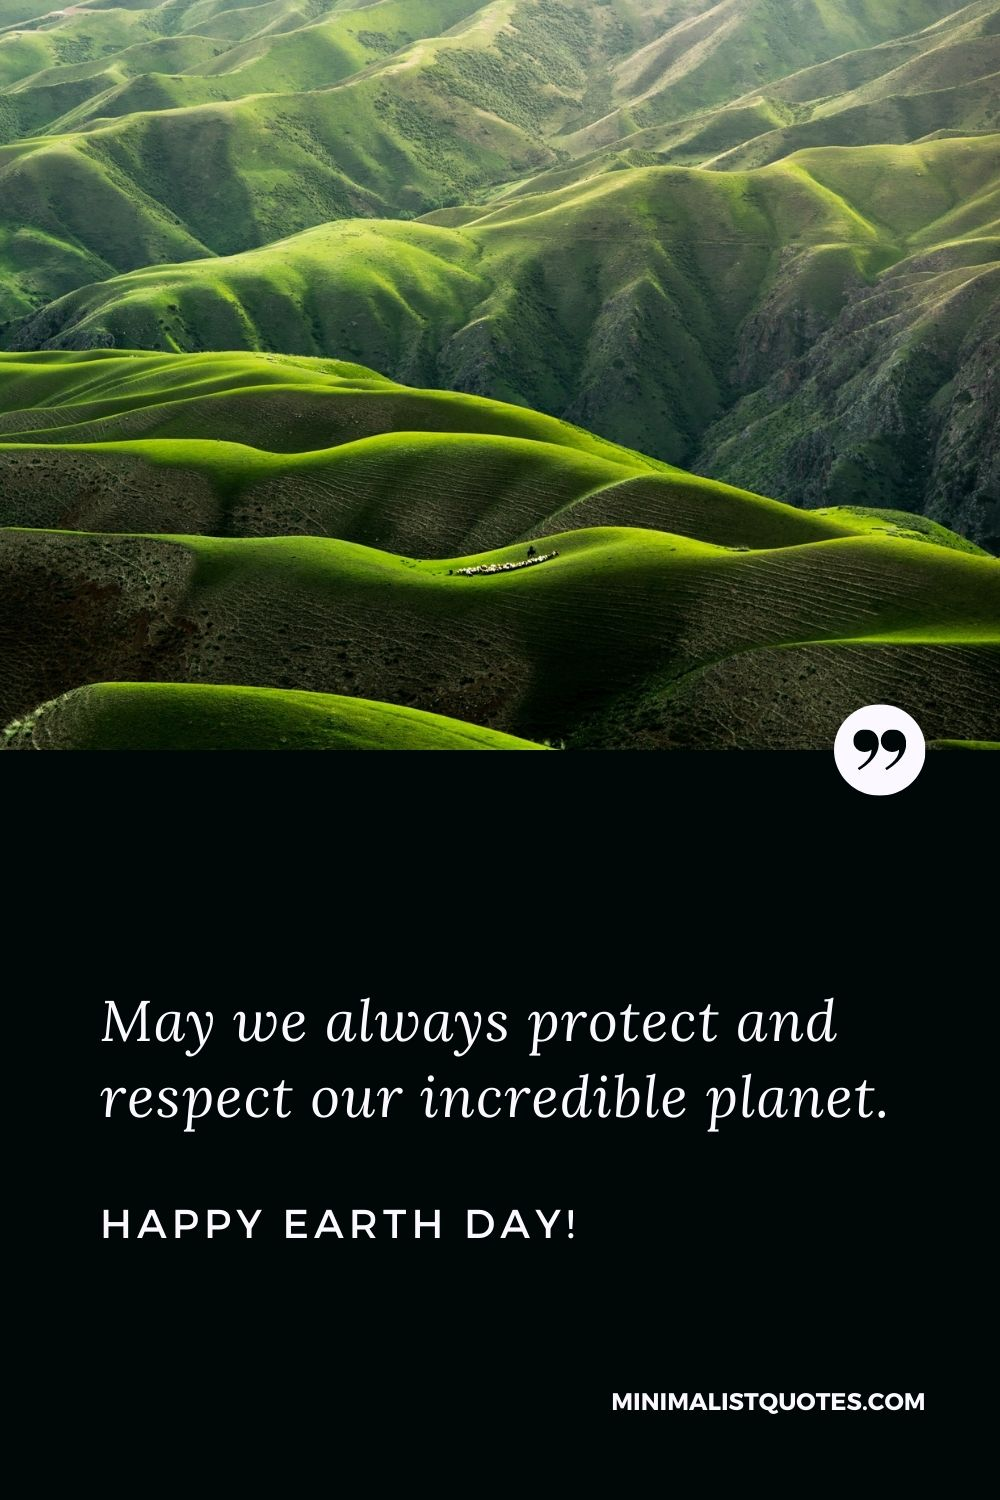 Earth Day Wishes, quotes & messages with images: May we always protect and respect our incredible planet. Happy Earth Day!